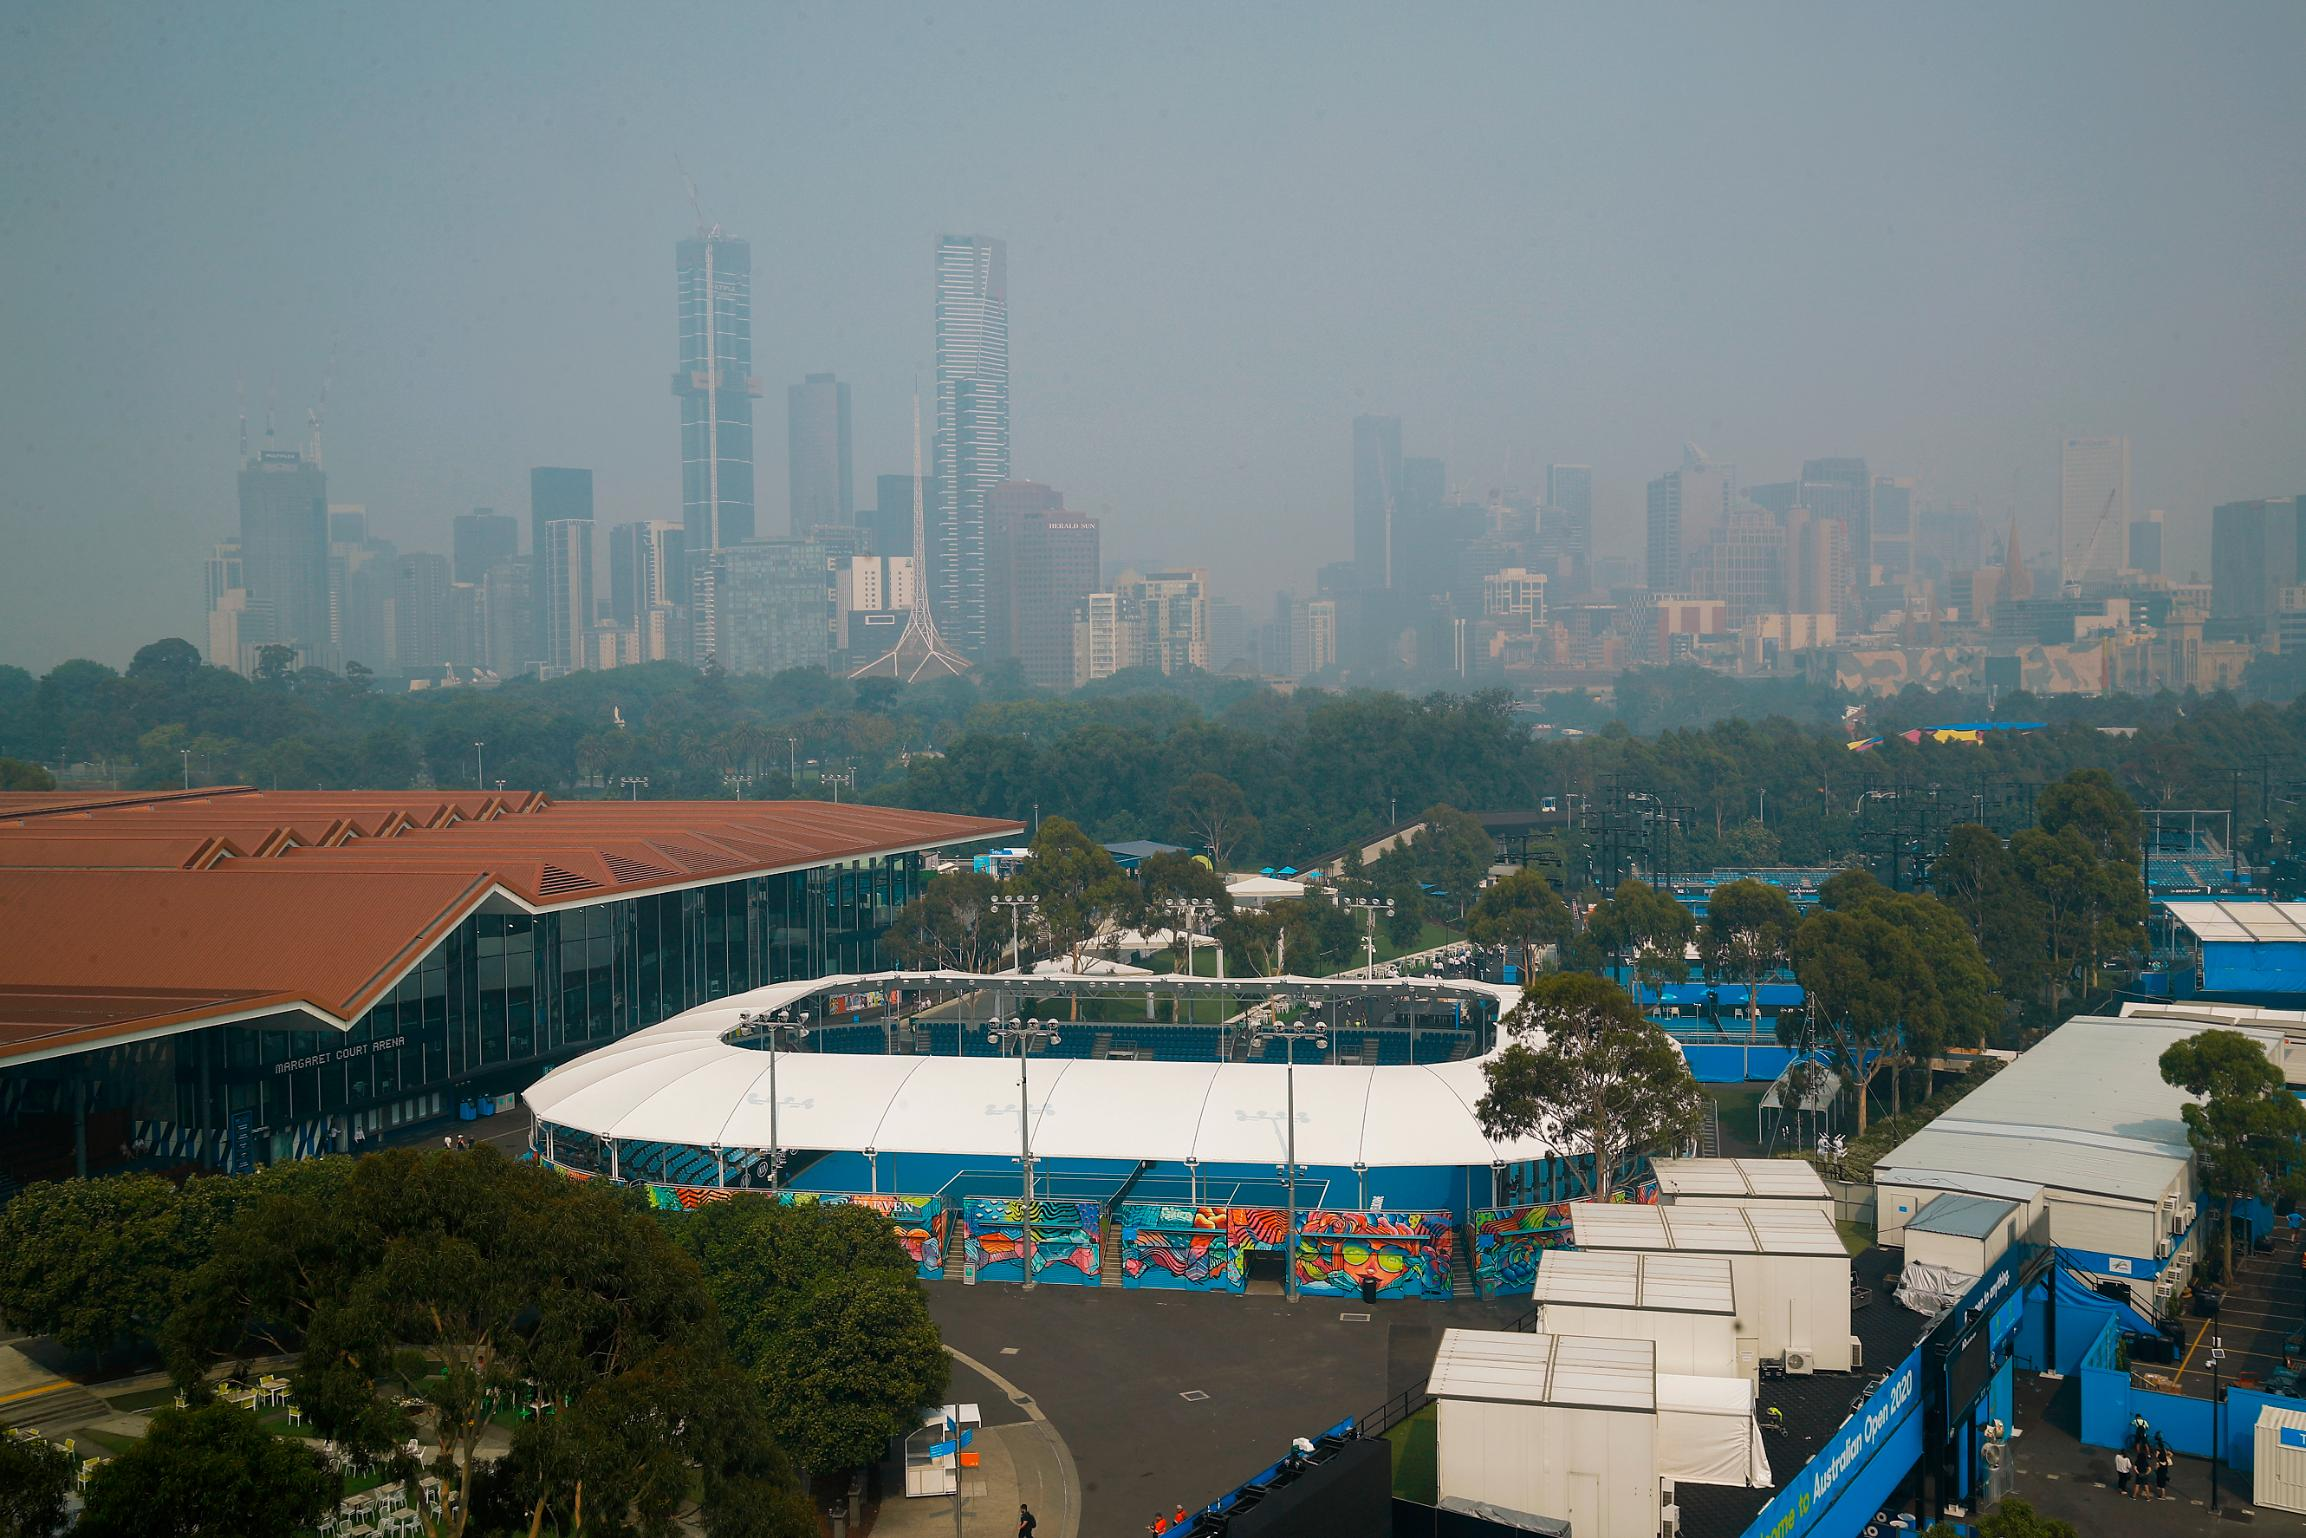 Australian Open chief says tournament will go ahead despite air quality concerns